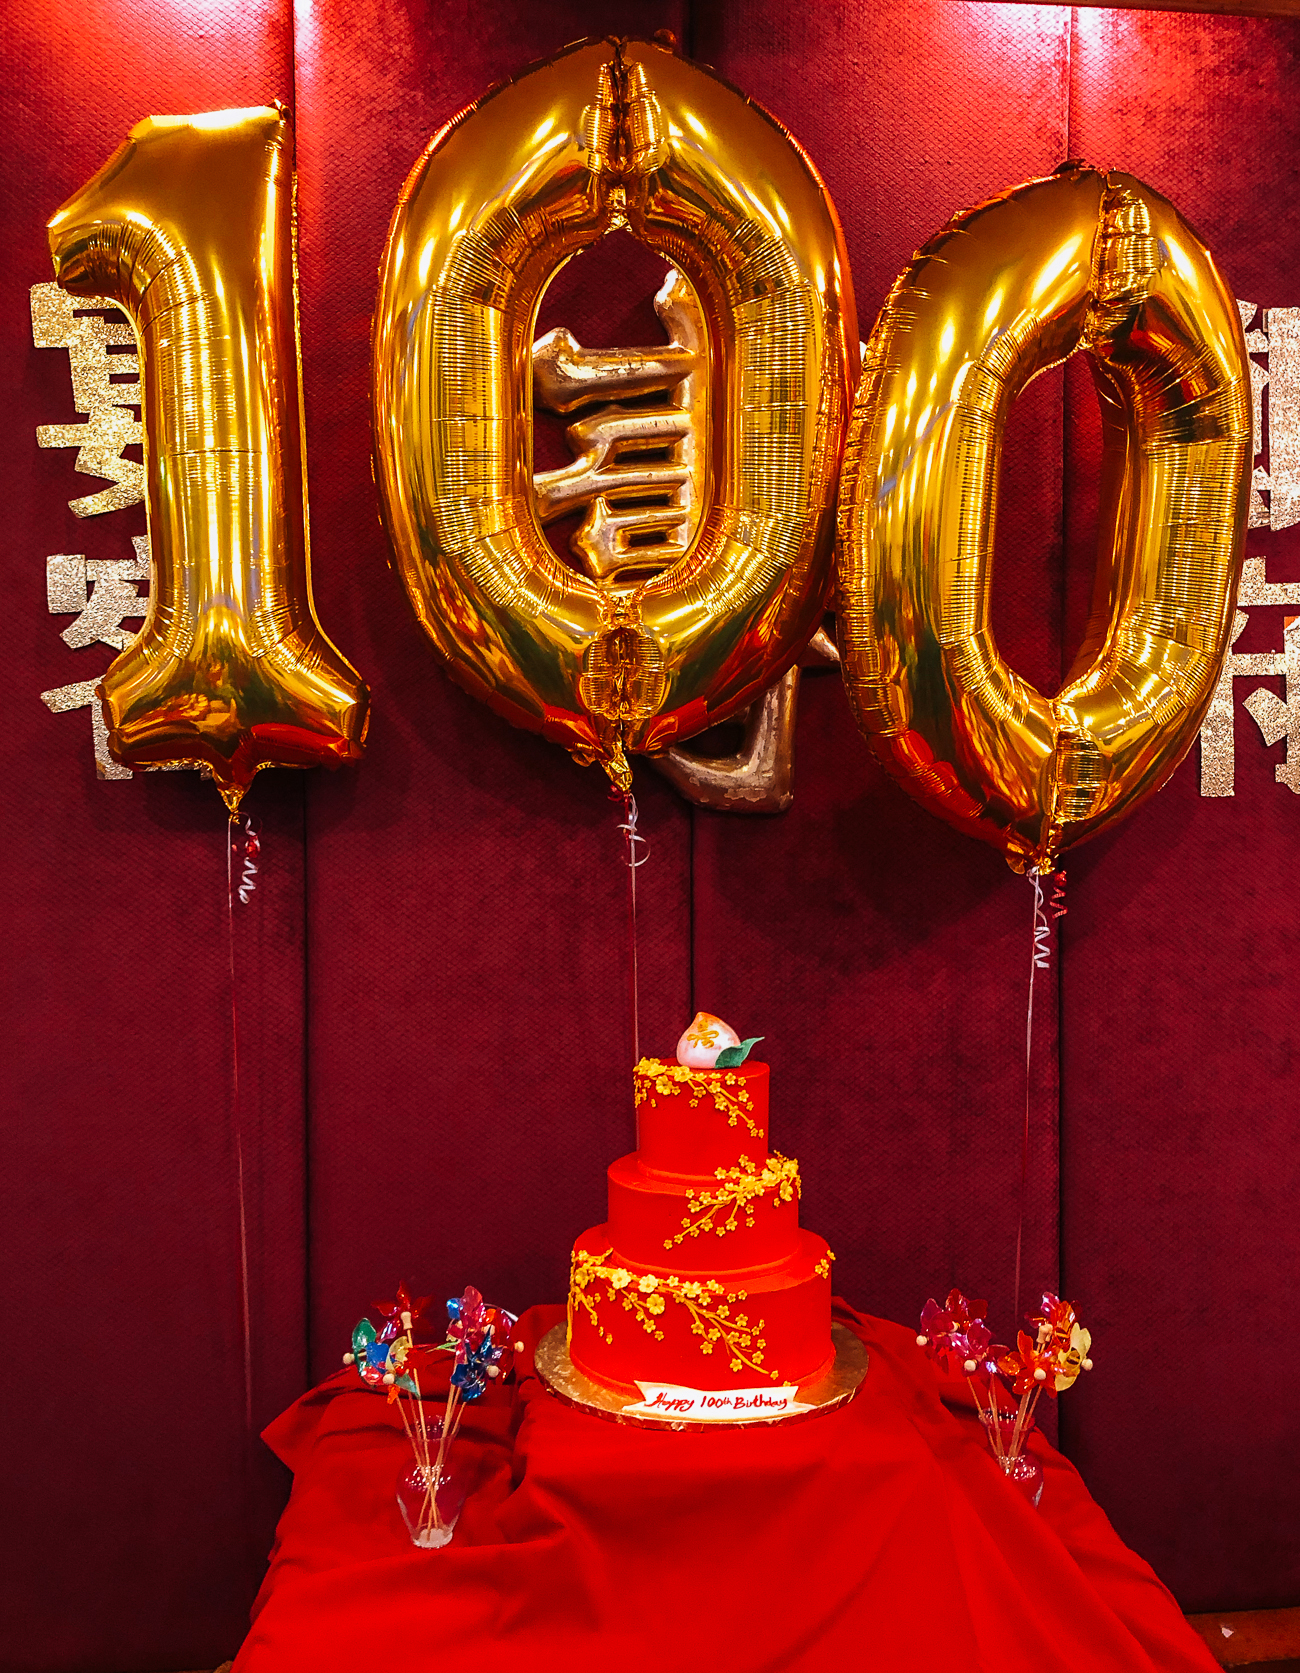 100th birthday cake and balloons